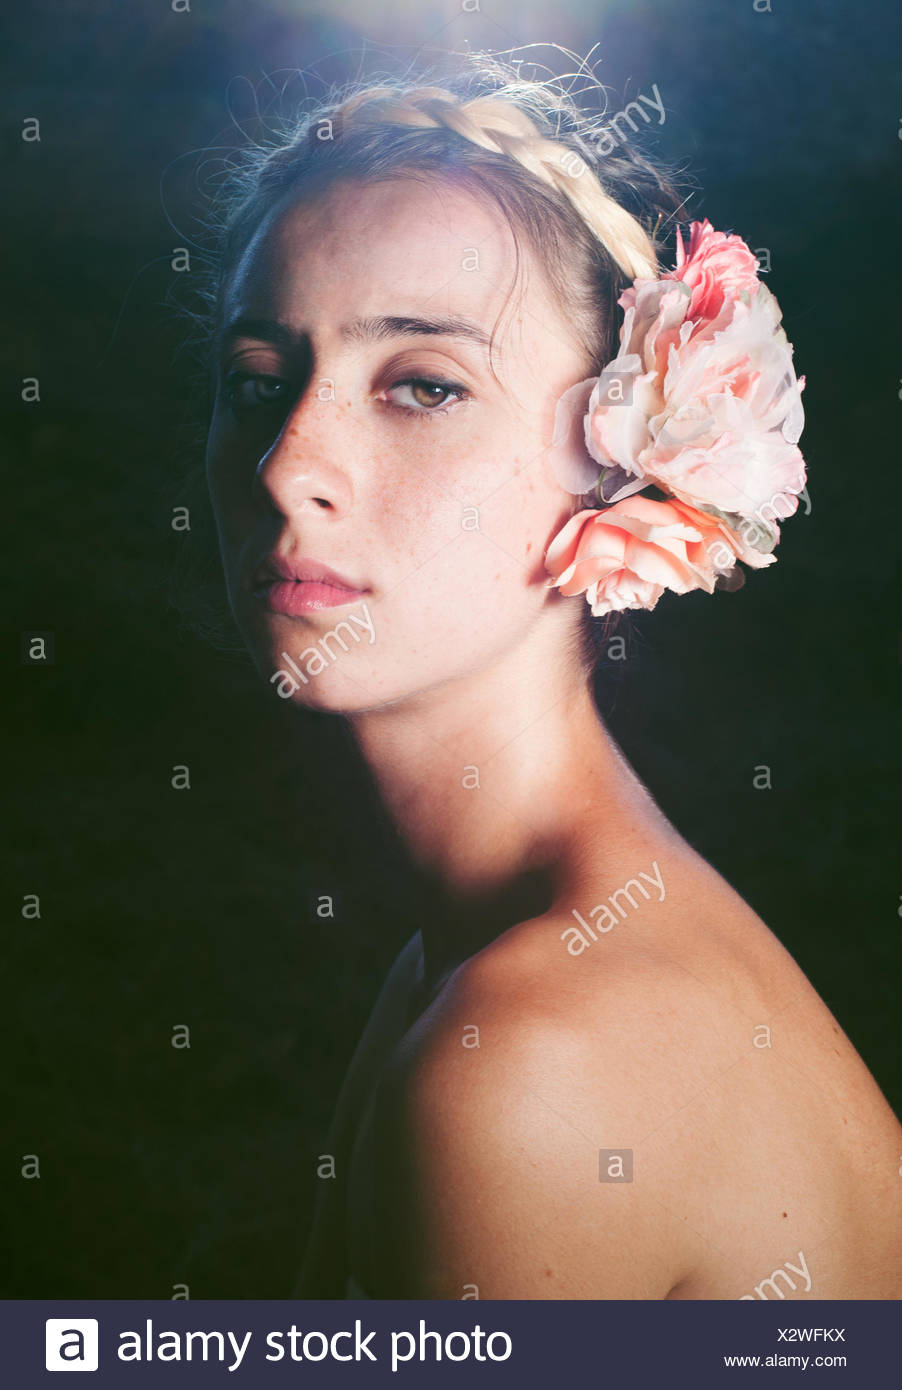 Portrait of woman with flower in hair - Stock Image